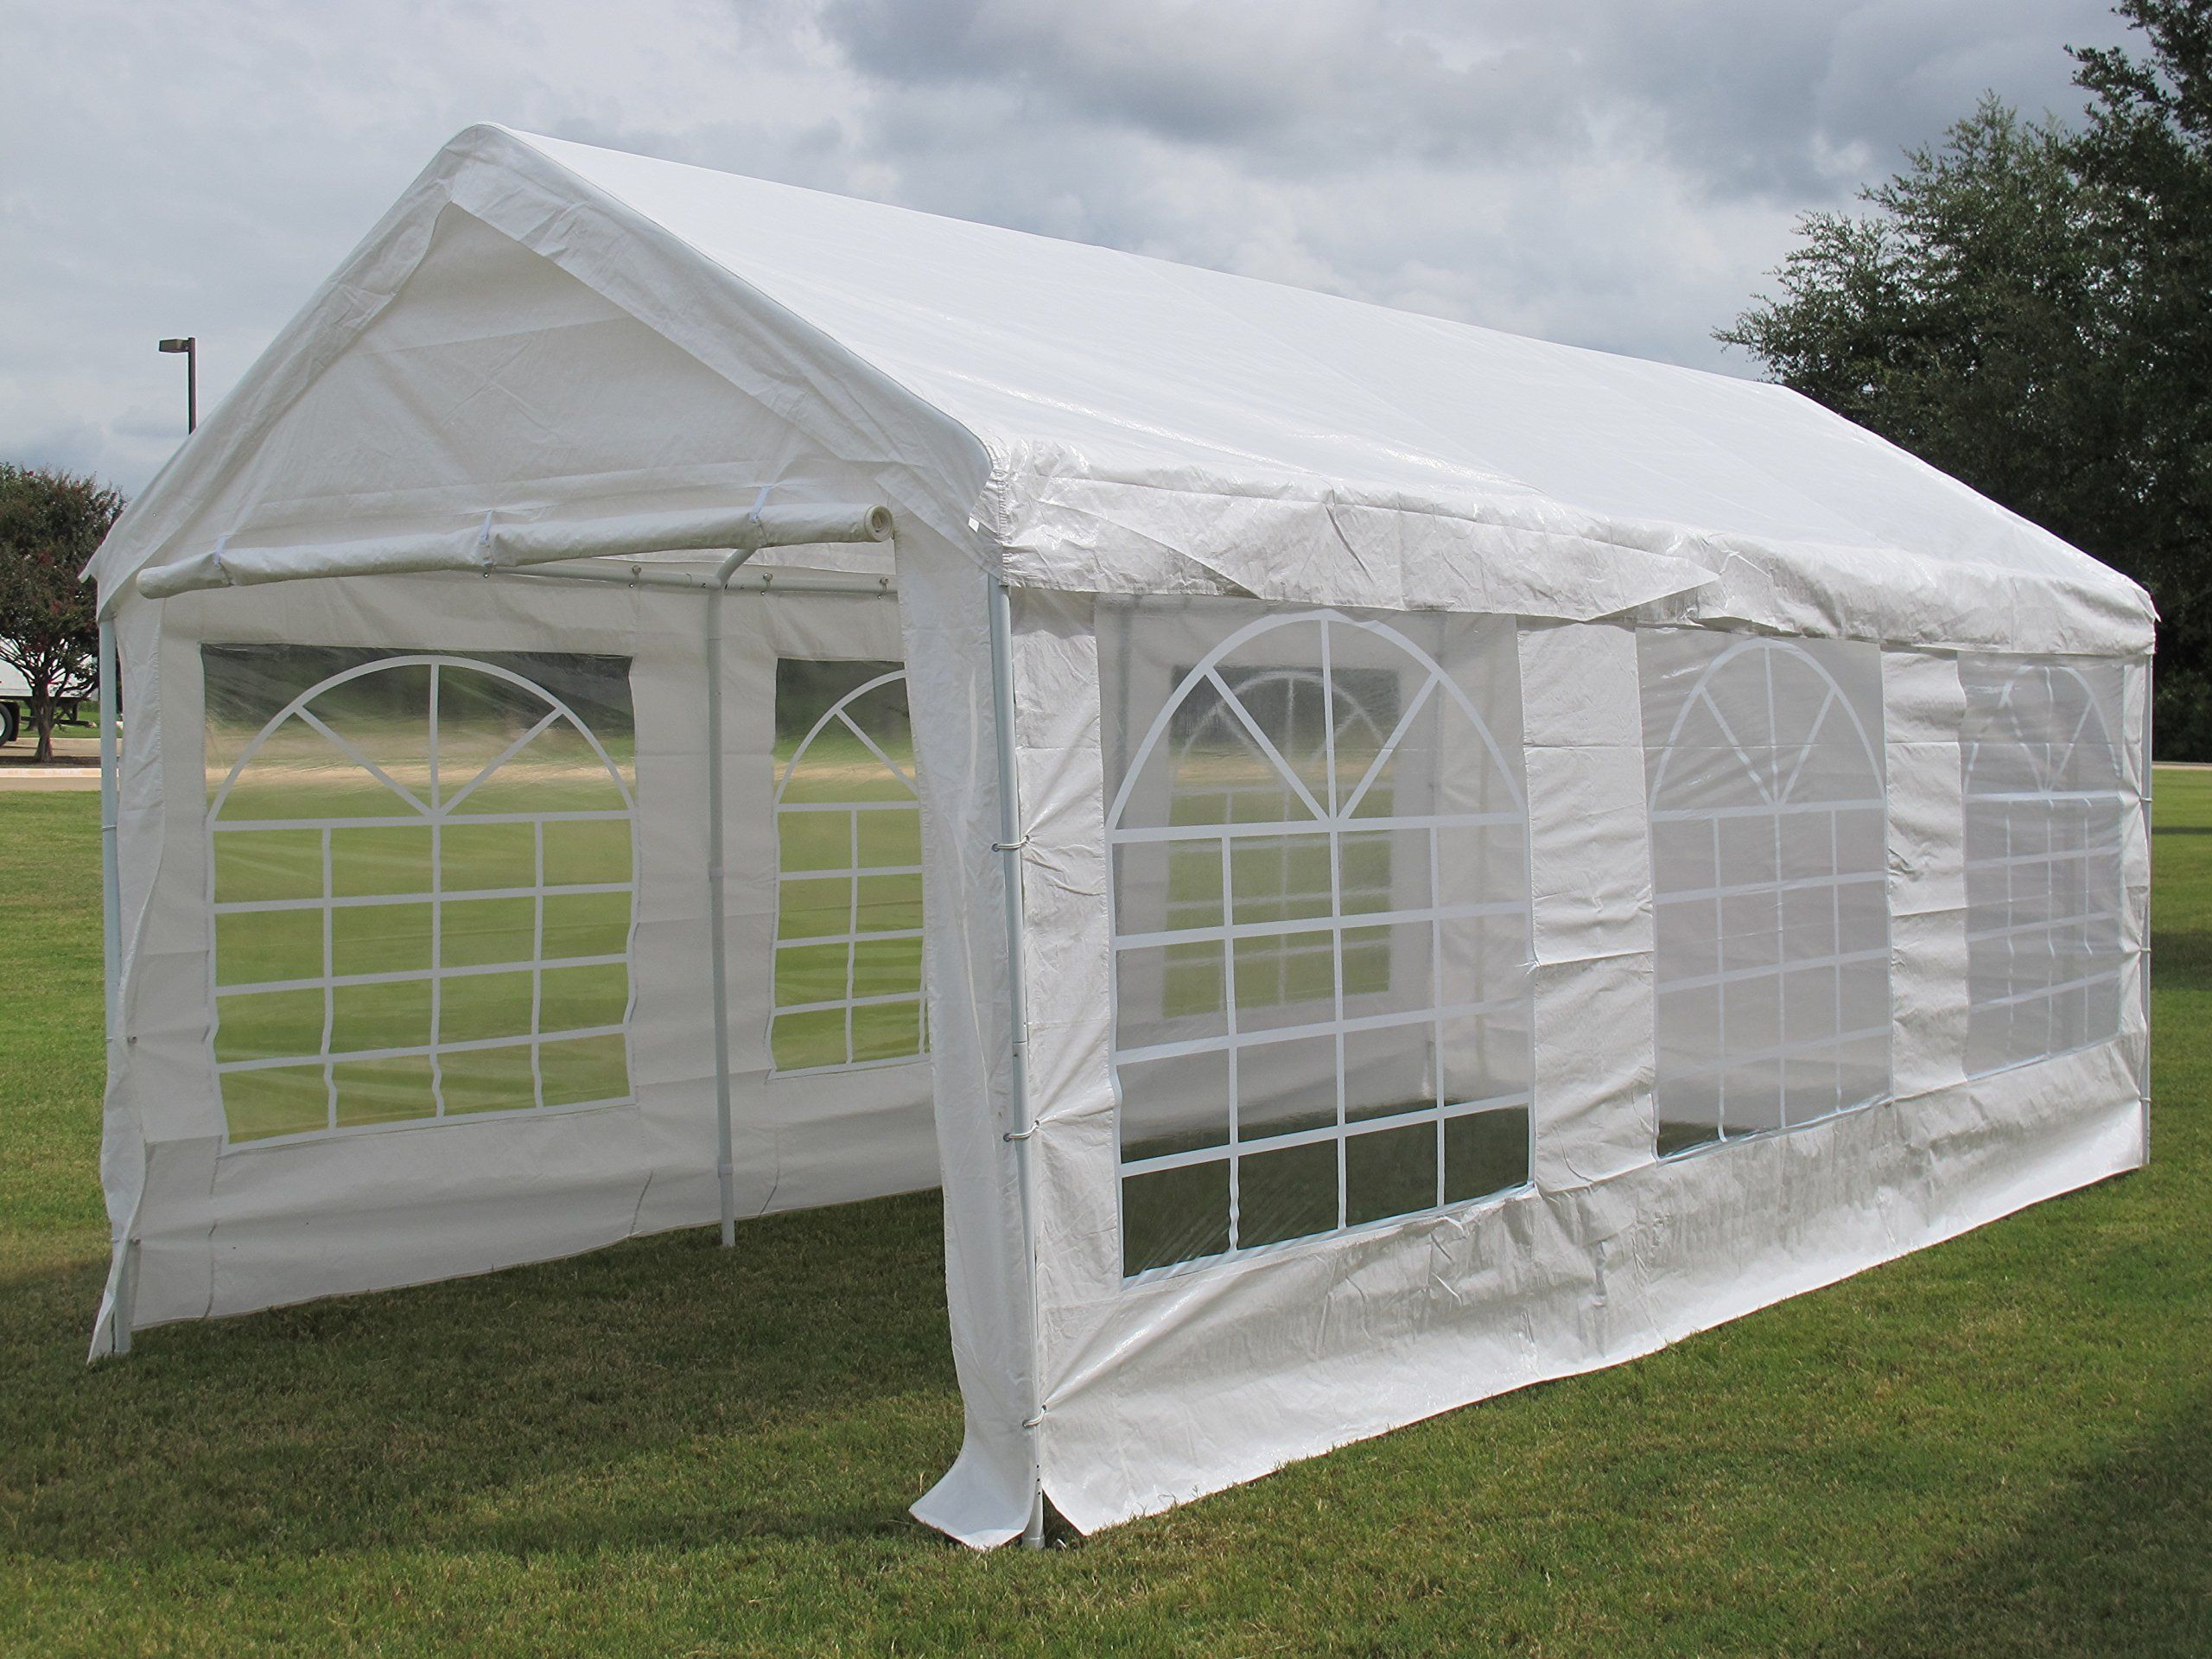 DELTA Canopies 20u0027X10u0027 PE Water Resistant Party Wedding Tent carport Canopy & DELTA Canopies 20u0027X10u0027 PE Water Resistant Party Wedding Tent ...